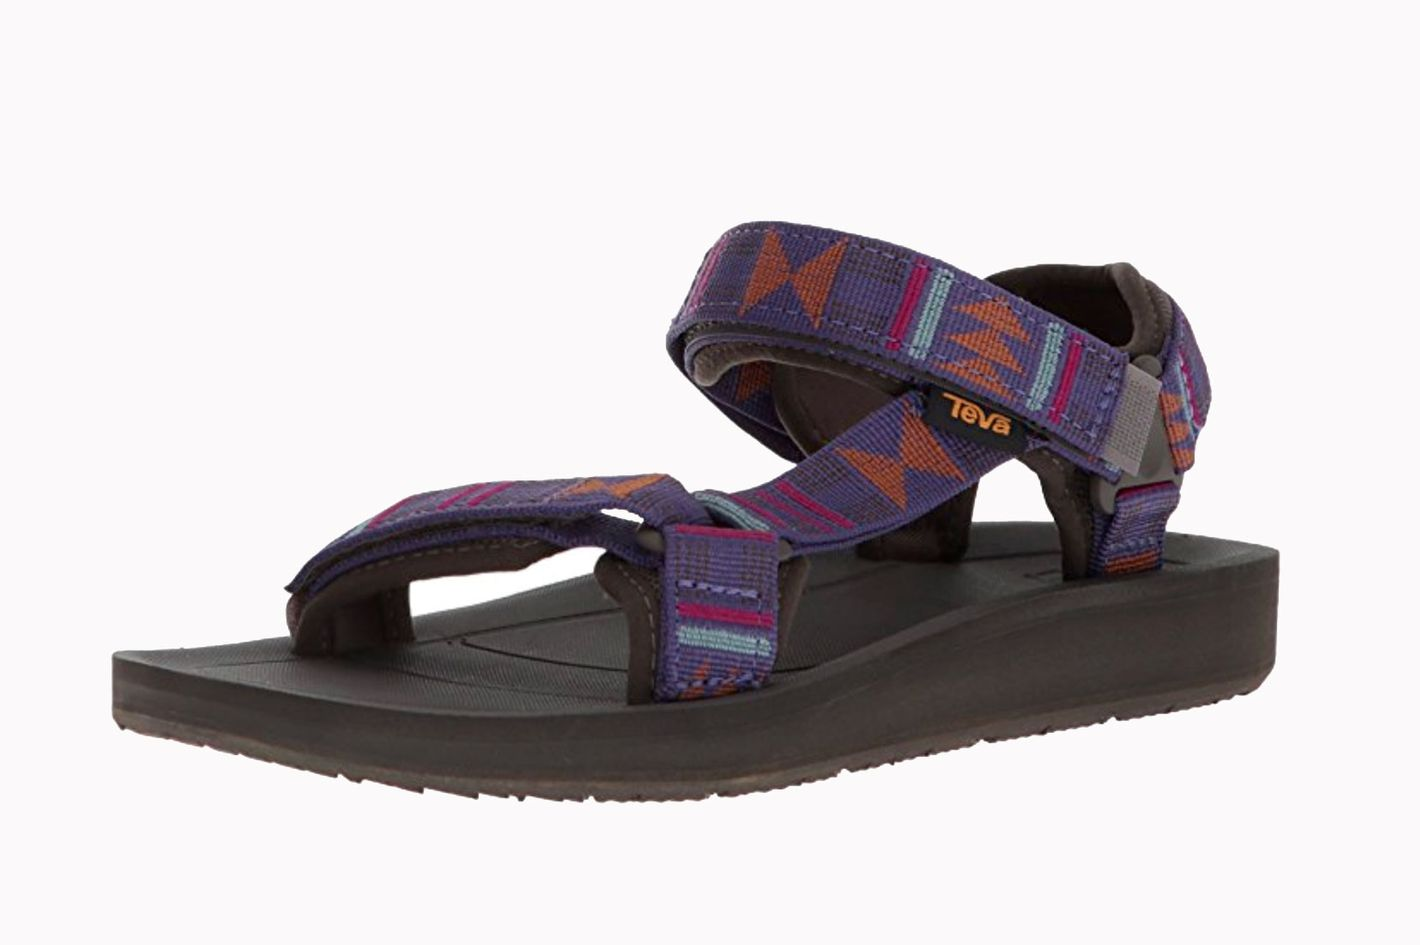 Tevas Women's Original Universal Premier Sandal in Beach Break Deep Wisteria